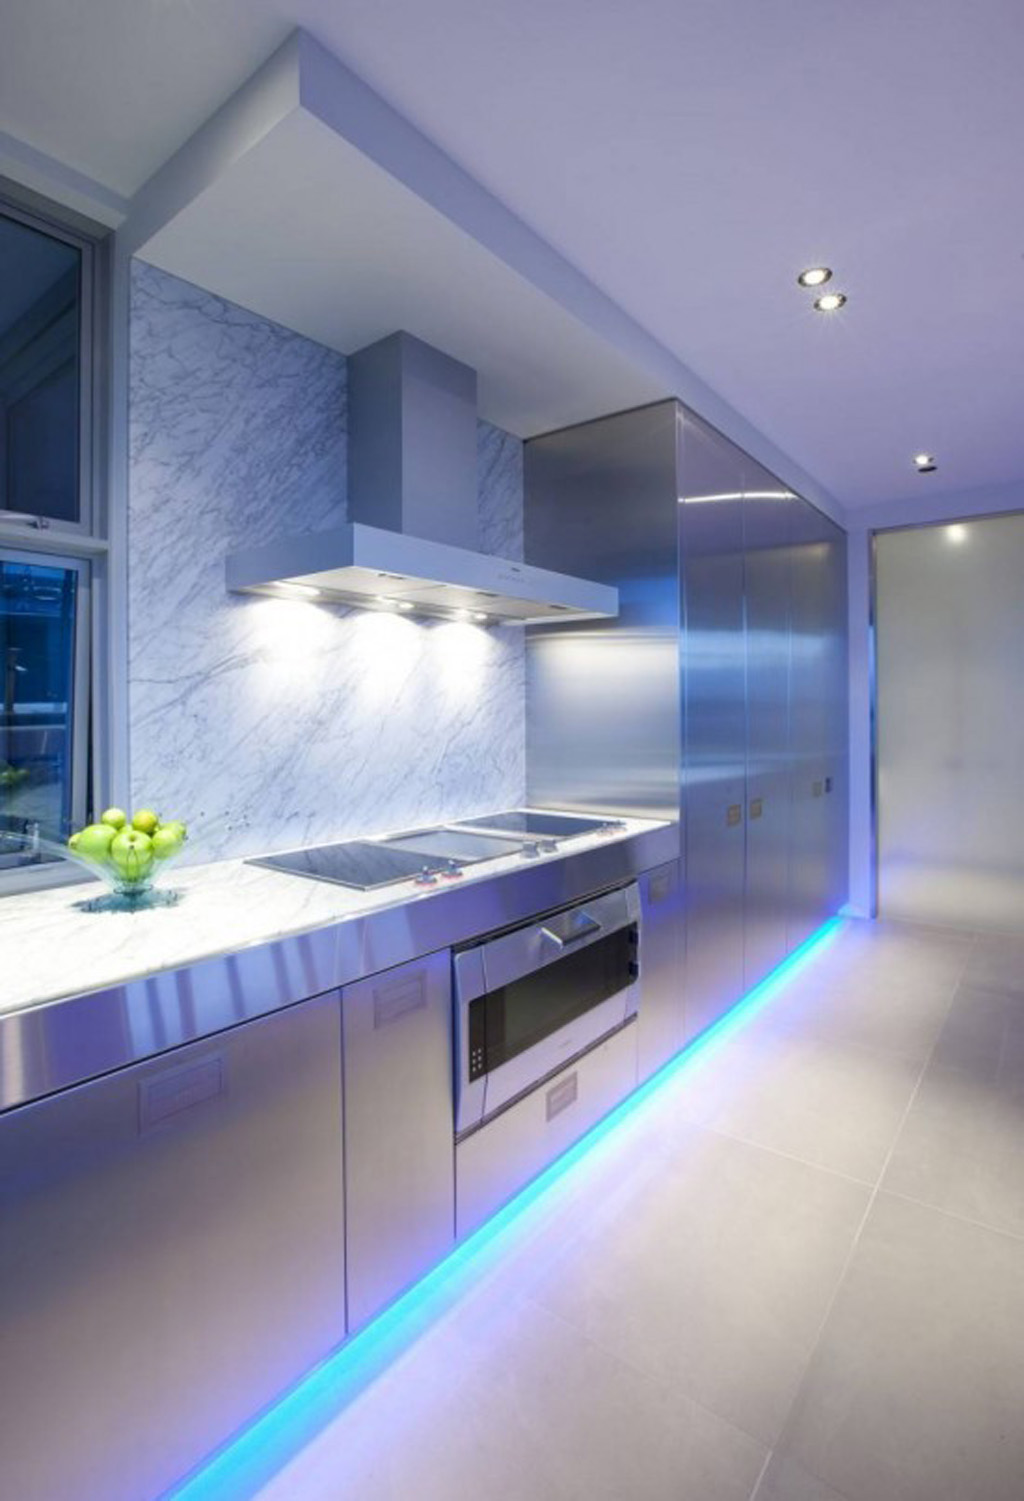 kitchen interior decor total images ultra modern kitchen interior decoration kitchen interior designs